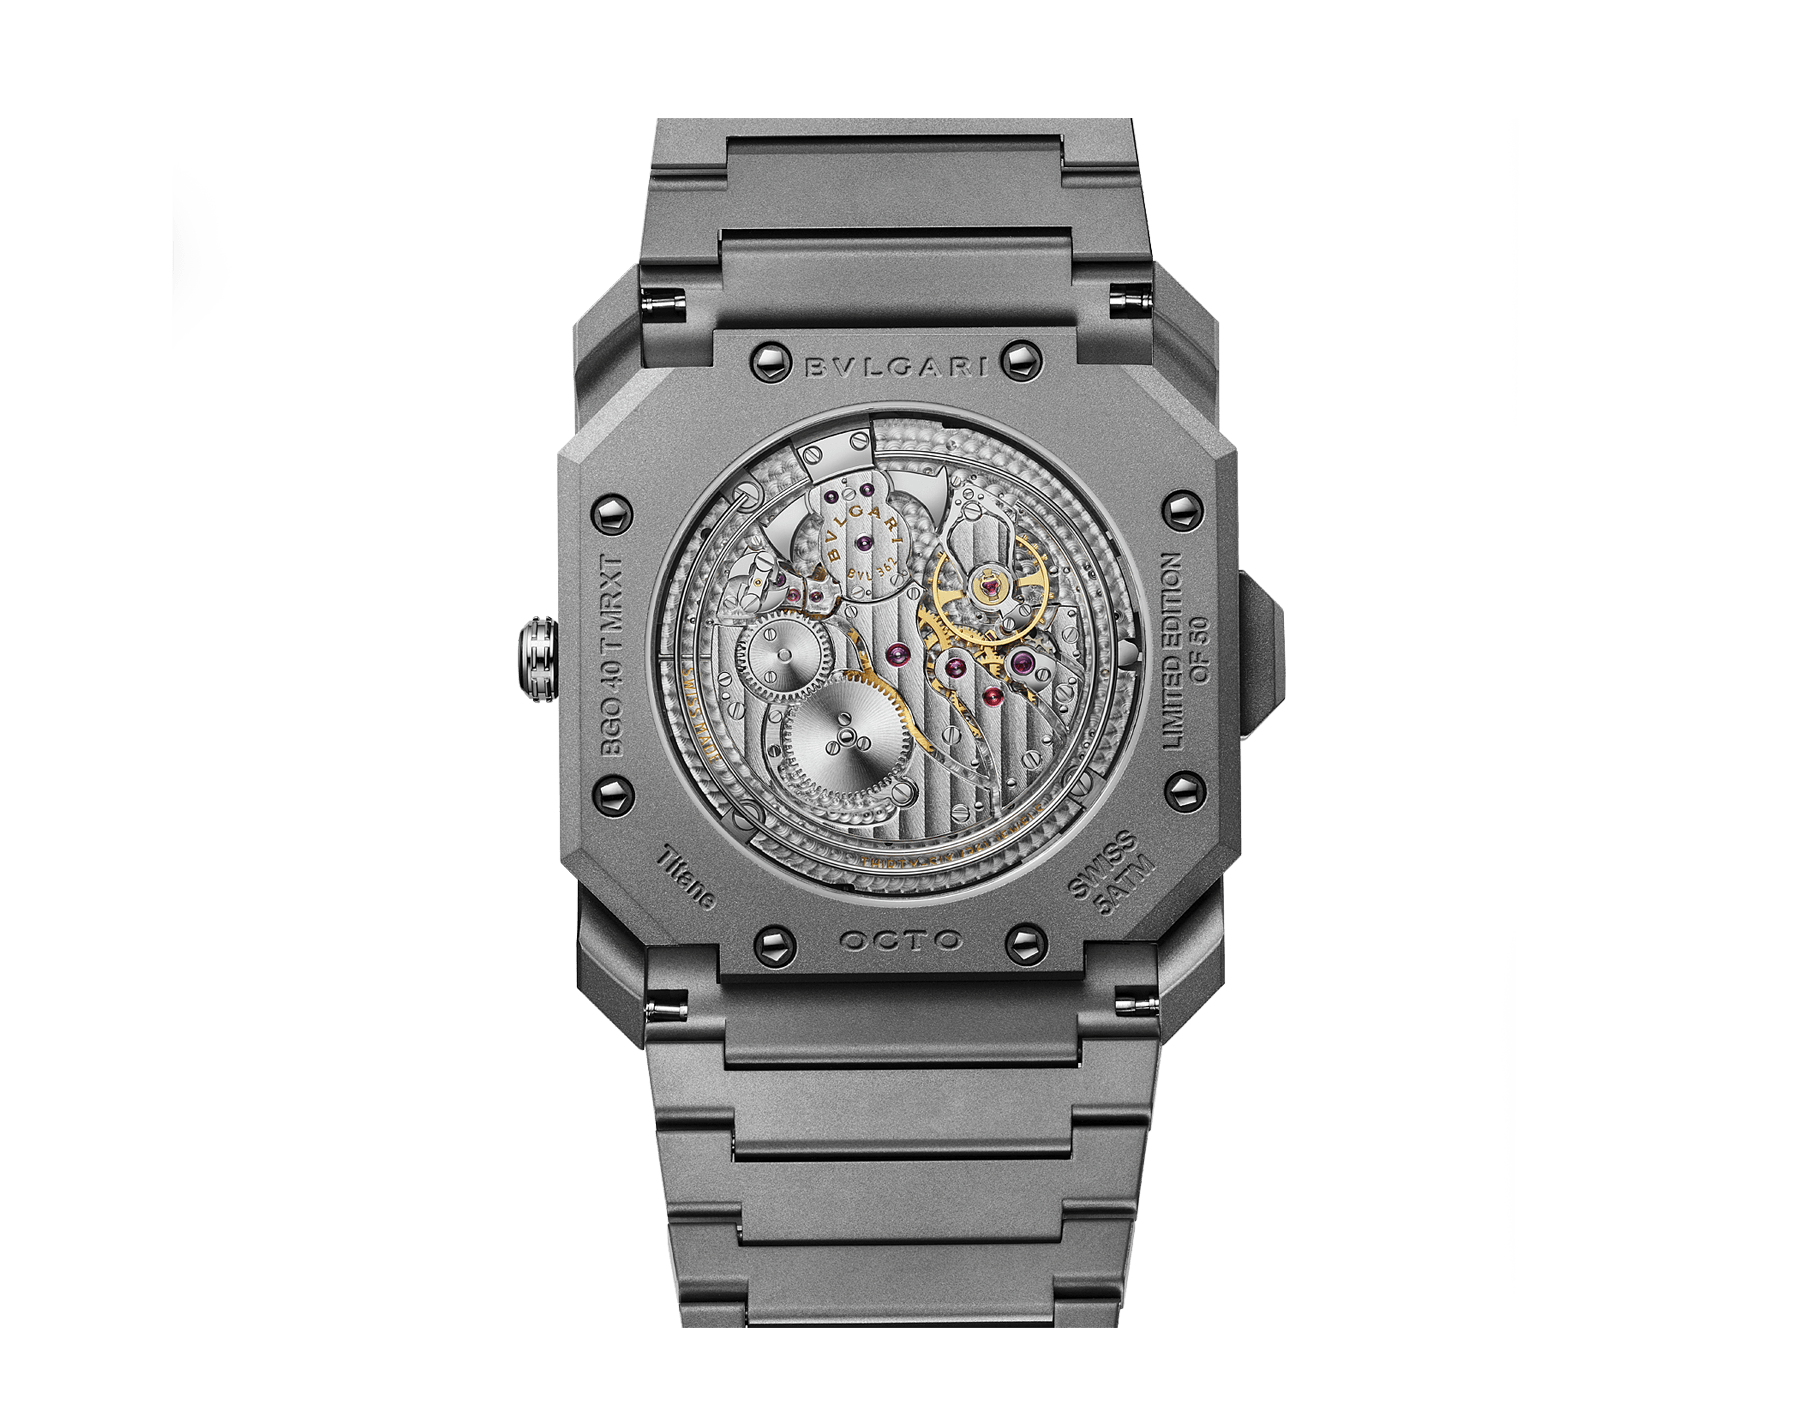 Octo Finissimo Minute Repeater Limited Edition watch with ultra-thin mechanical manufacture movement, two hammers, skeleton indexes, sandblasted titanium case, dial and bracelet 103015 image 3